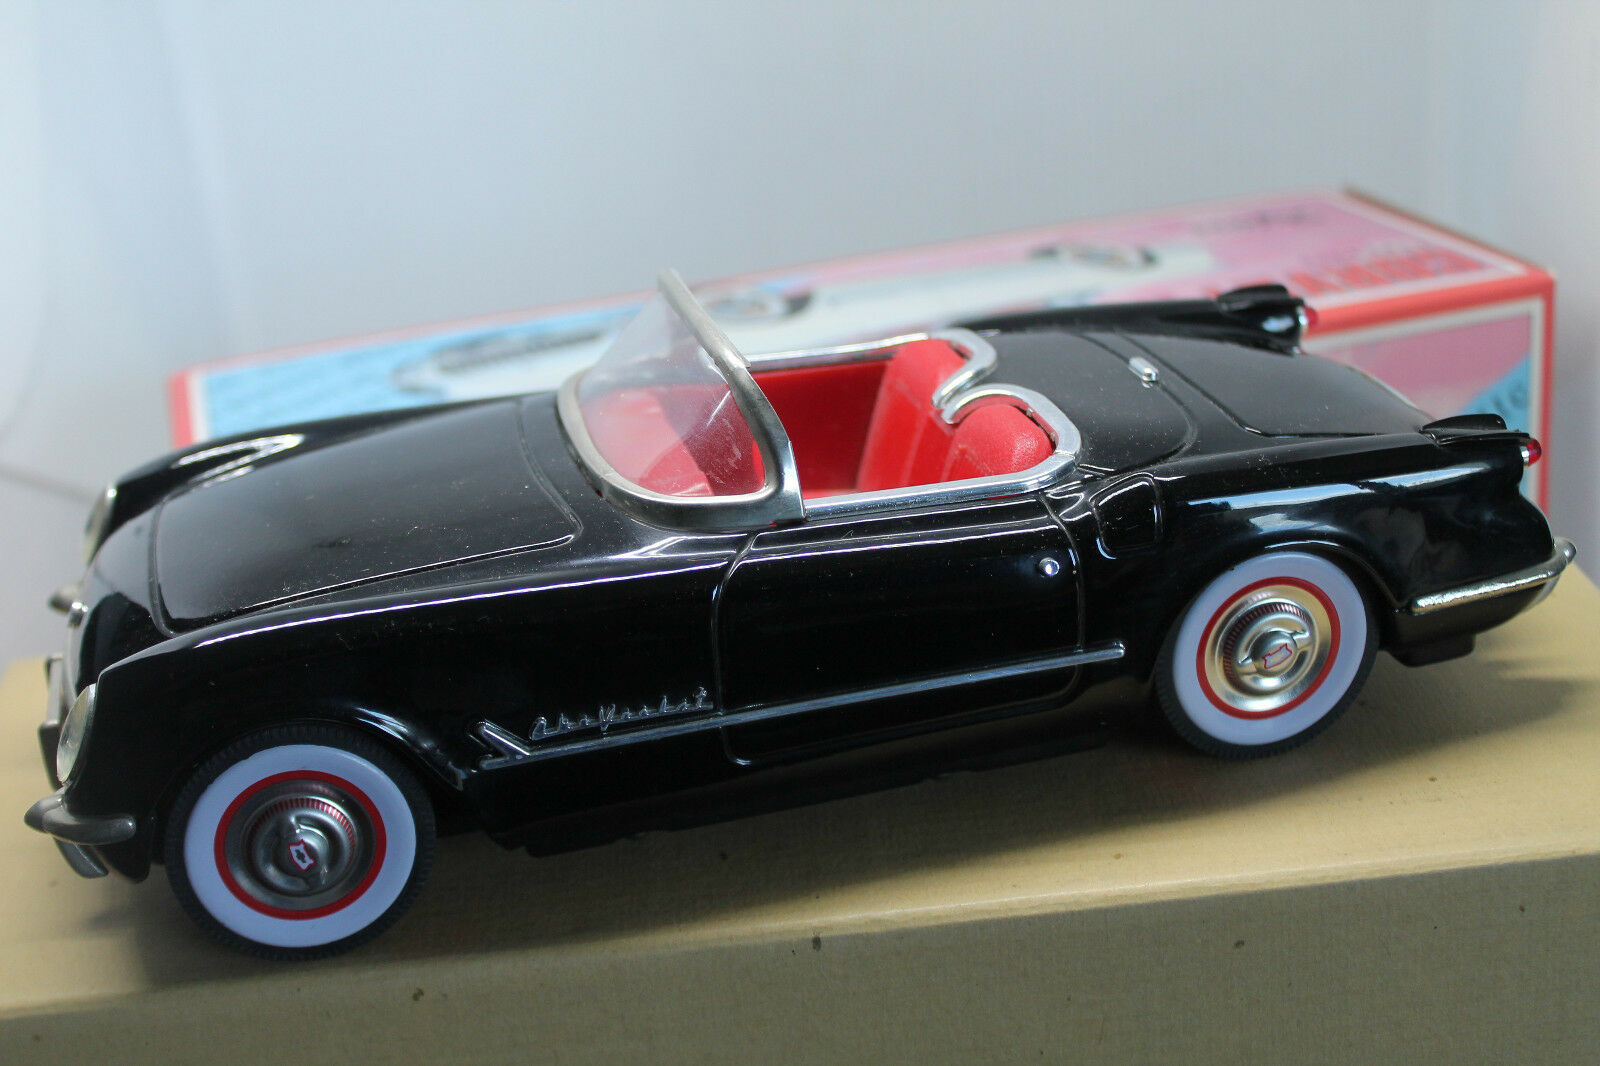 FIFTIES  CHEVROLET CORVETTE 1953  NEGRO  1 18  OVP  FRICTION DRIVE